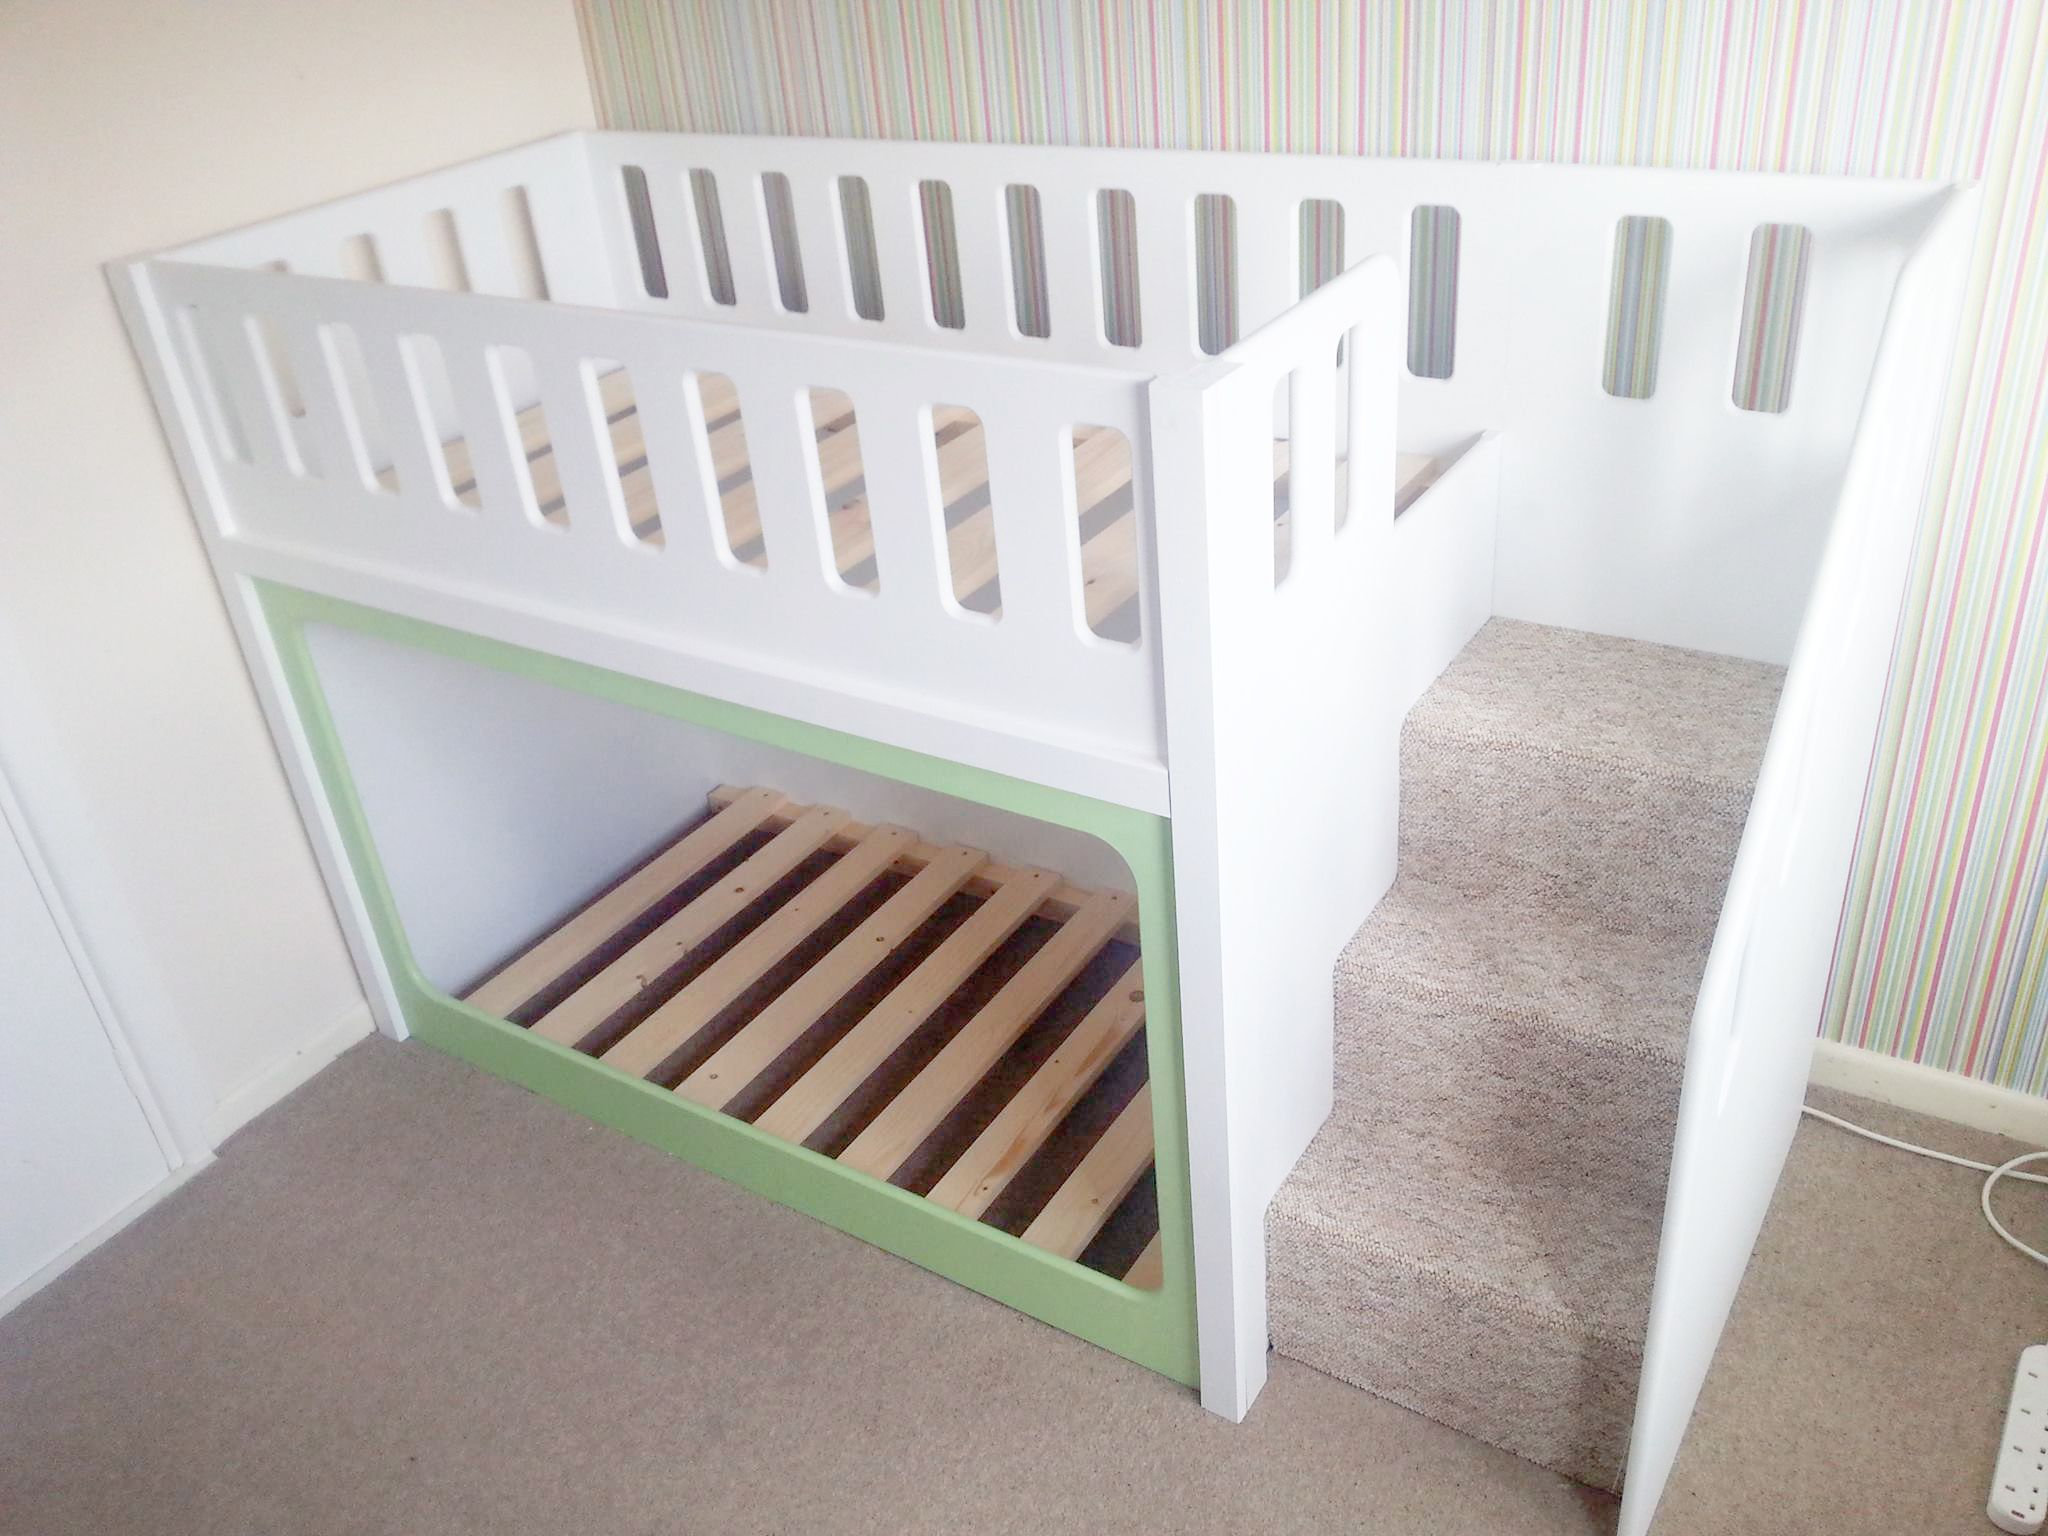 Image31 Jpg 2048 1536 Toddler Bunk Beds Kids Bunk Beds Bunk